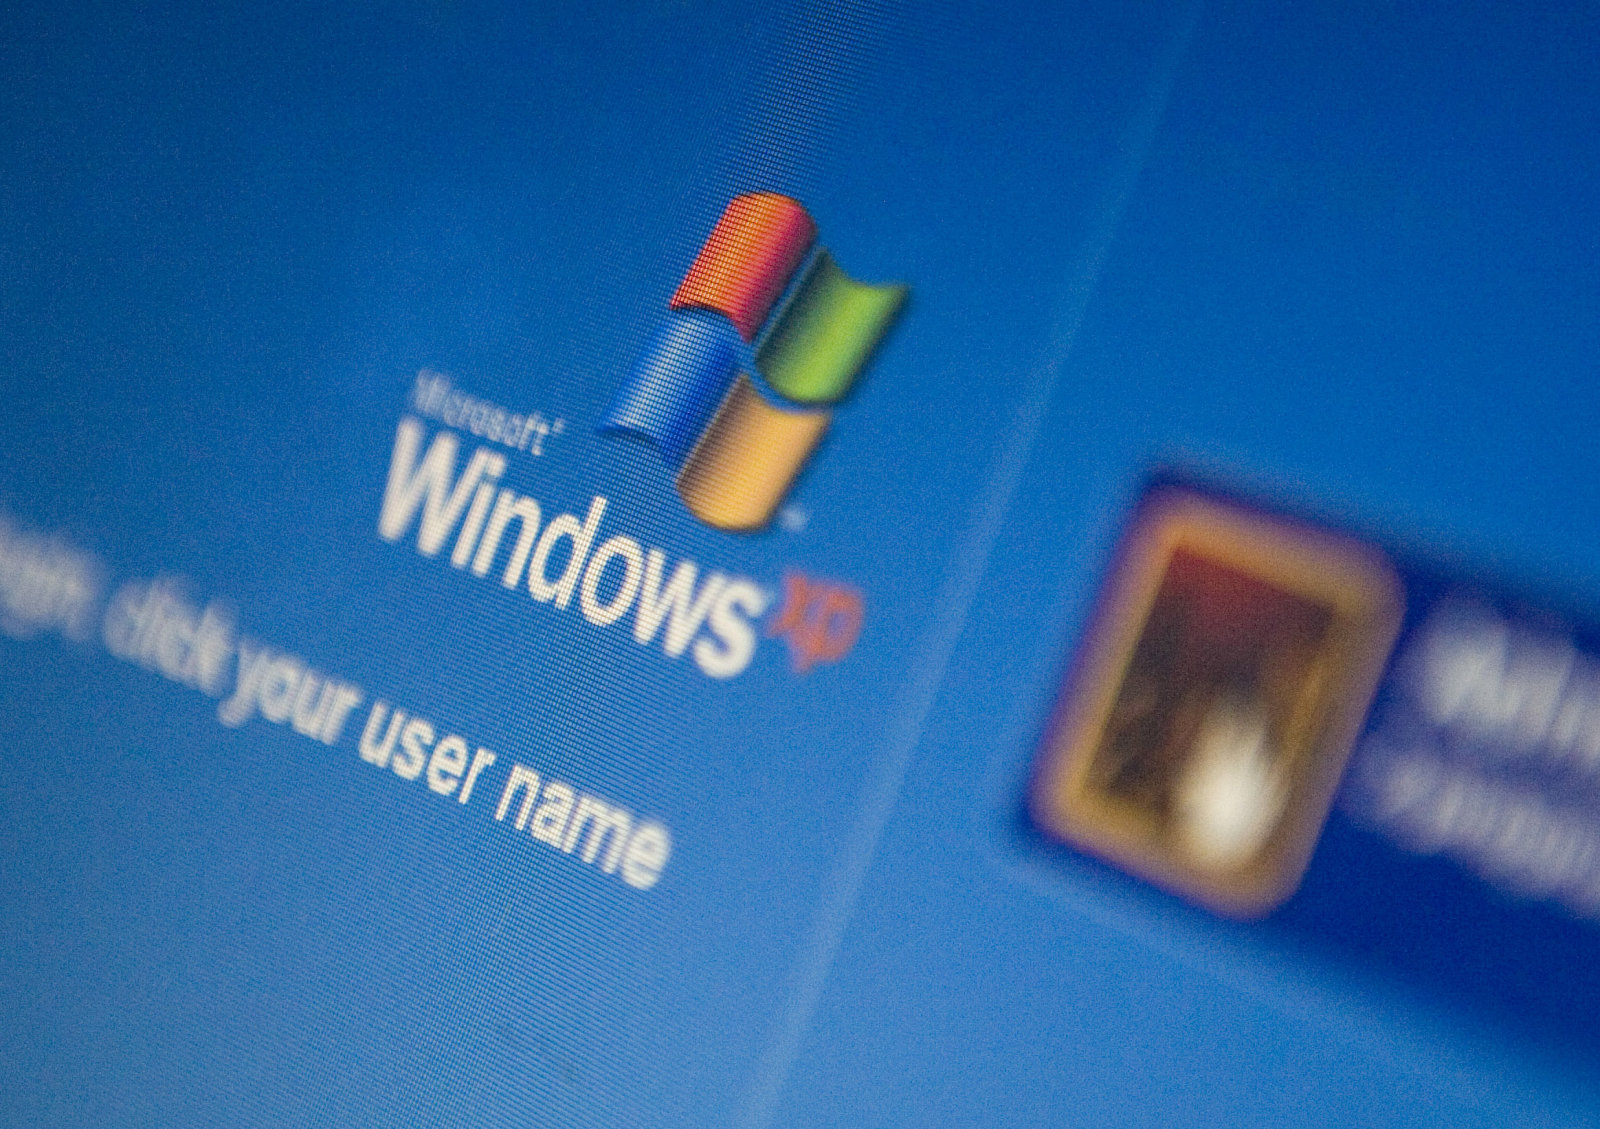 the-microsoft-windows-xp-login-screen-is-displayed-on-a-laptop-in-picture-id94948319.jpg